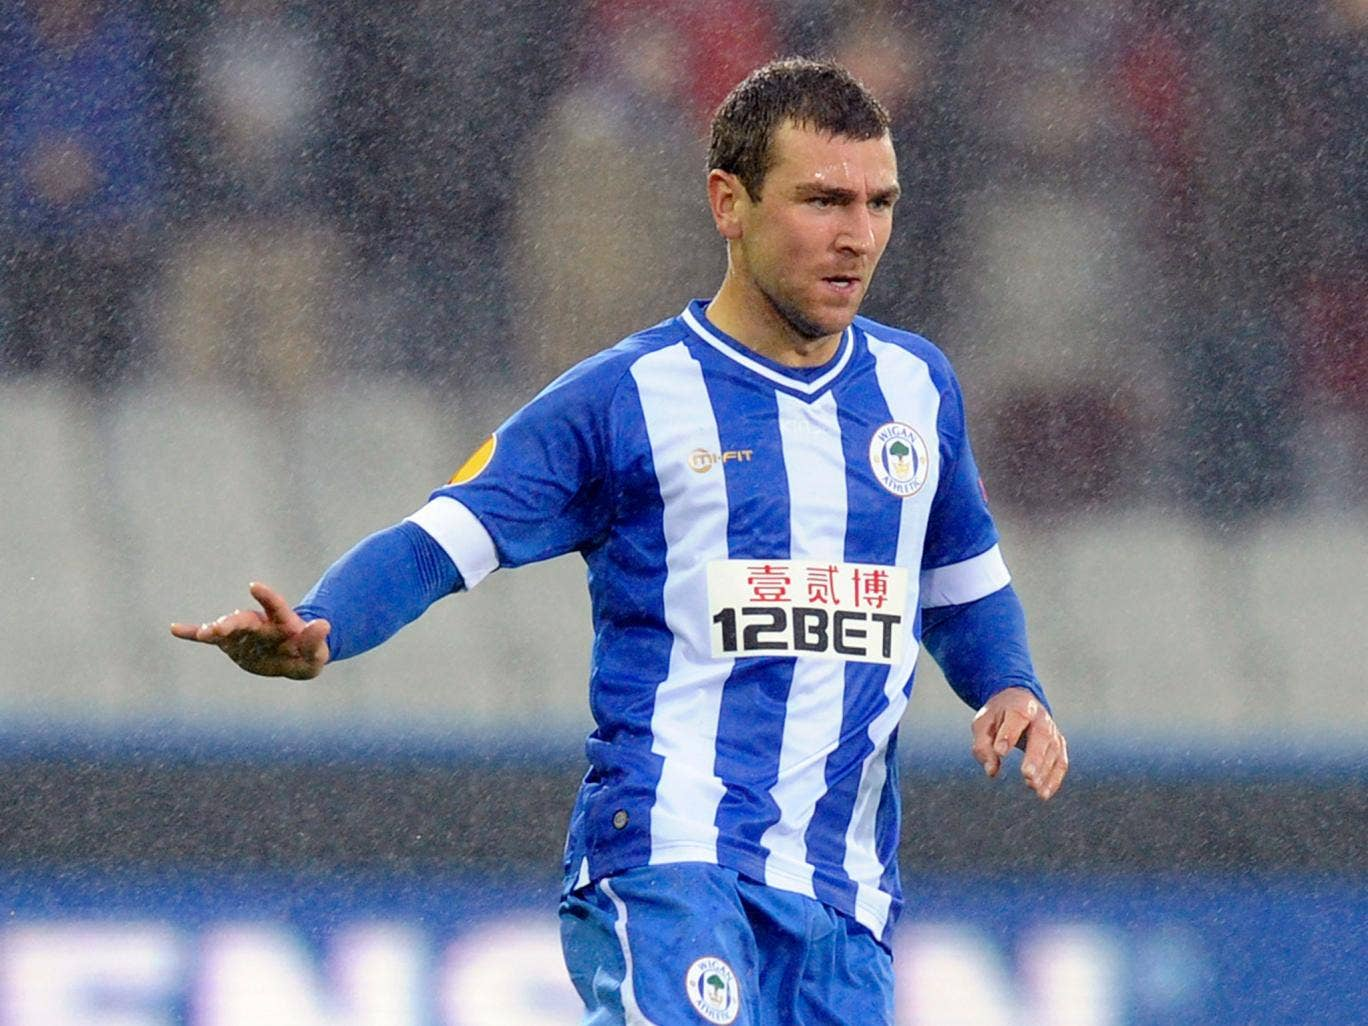 Wigan midfielder James McArthur is hoping to produce something special against Rubin Kazan in the Europa League